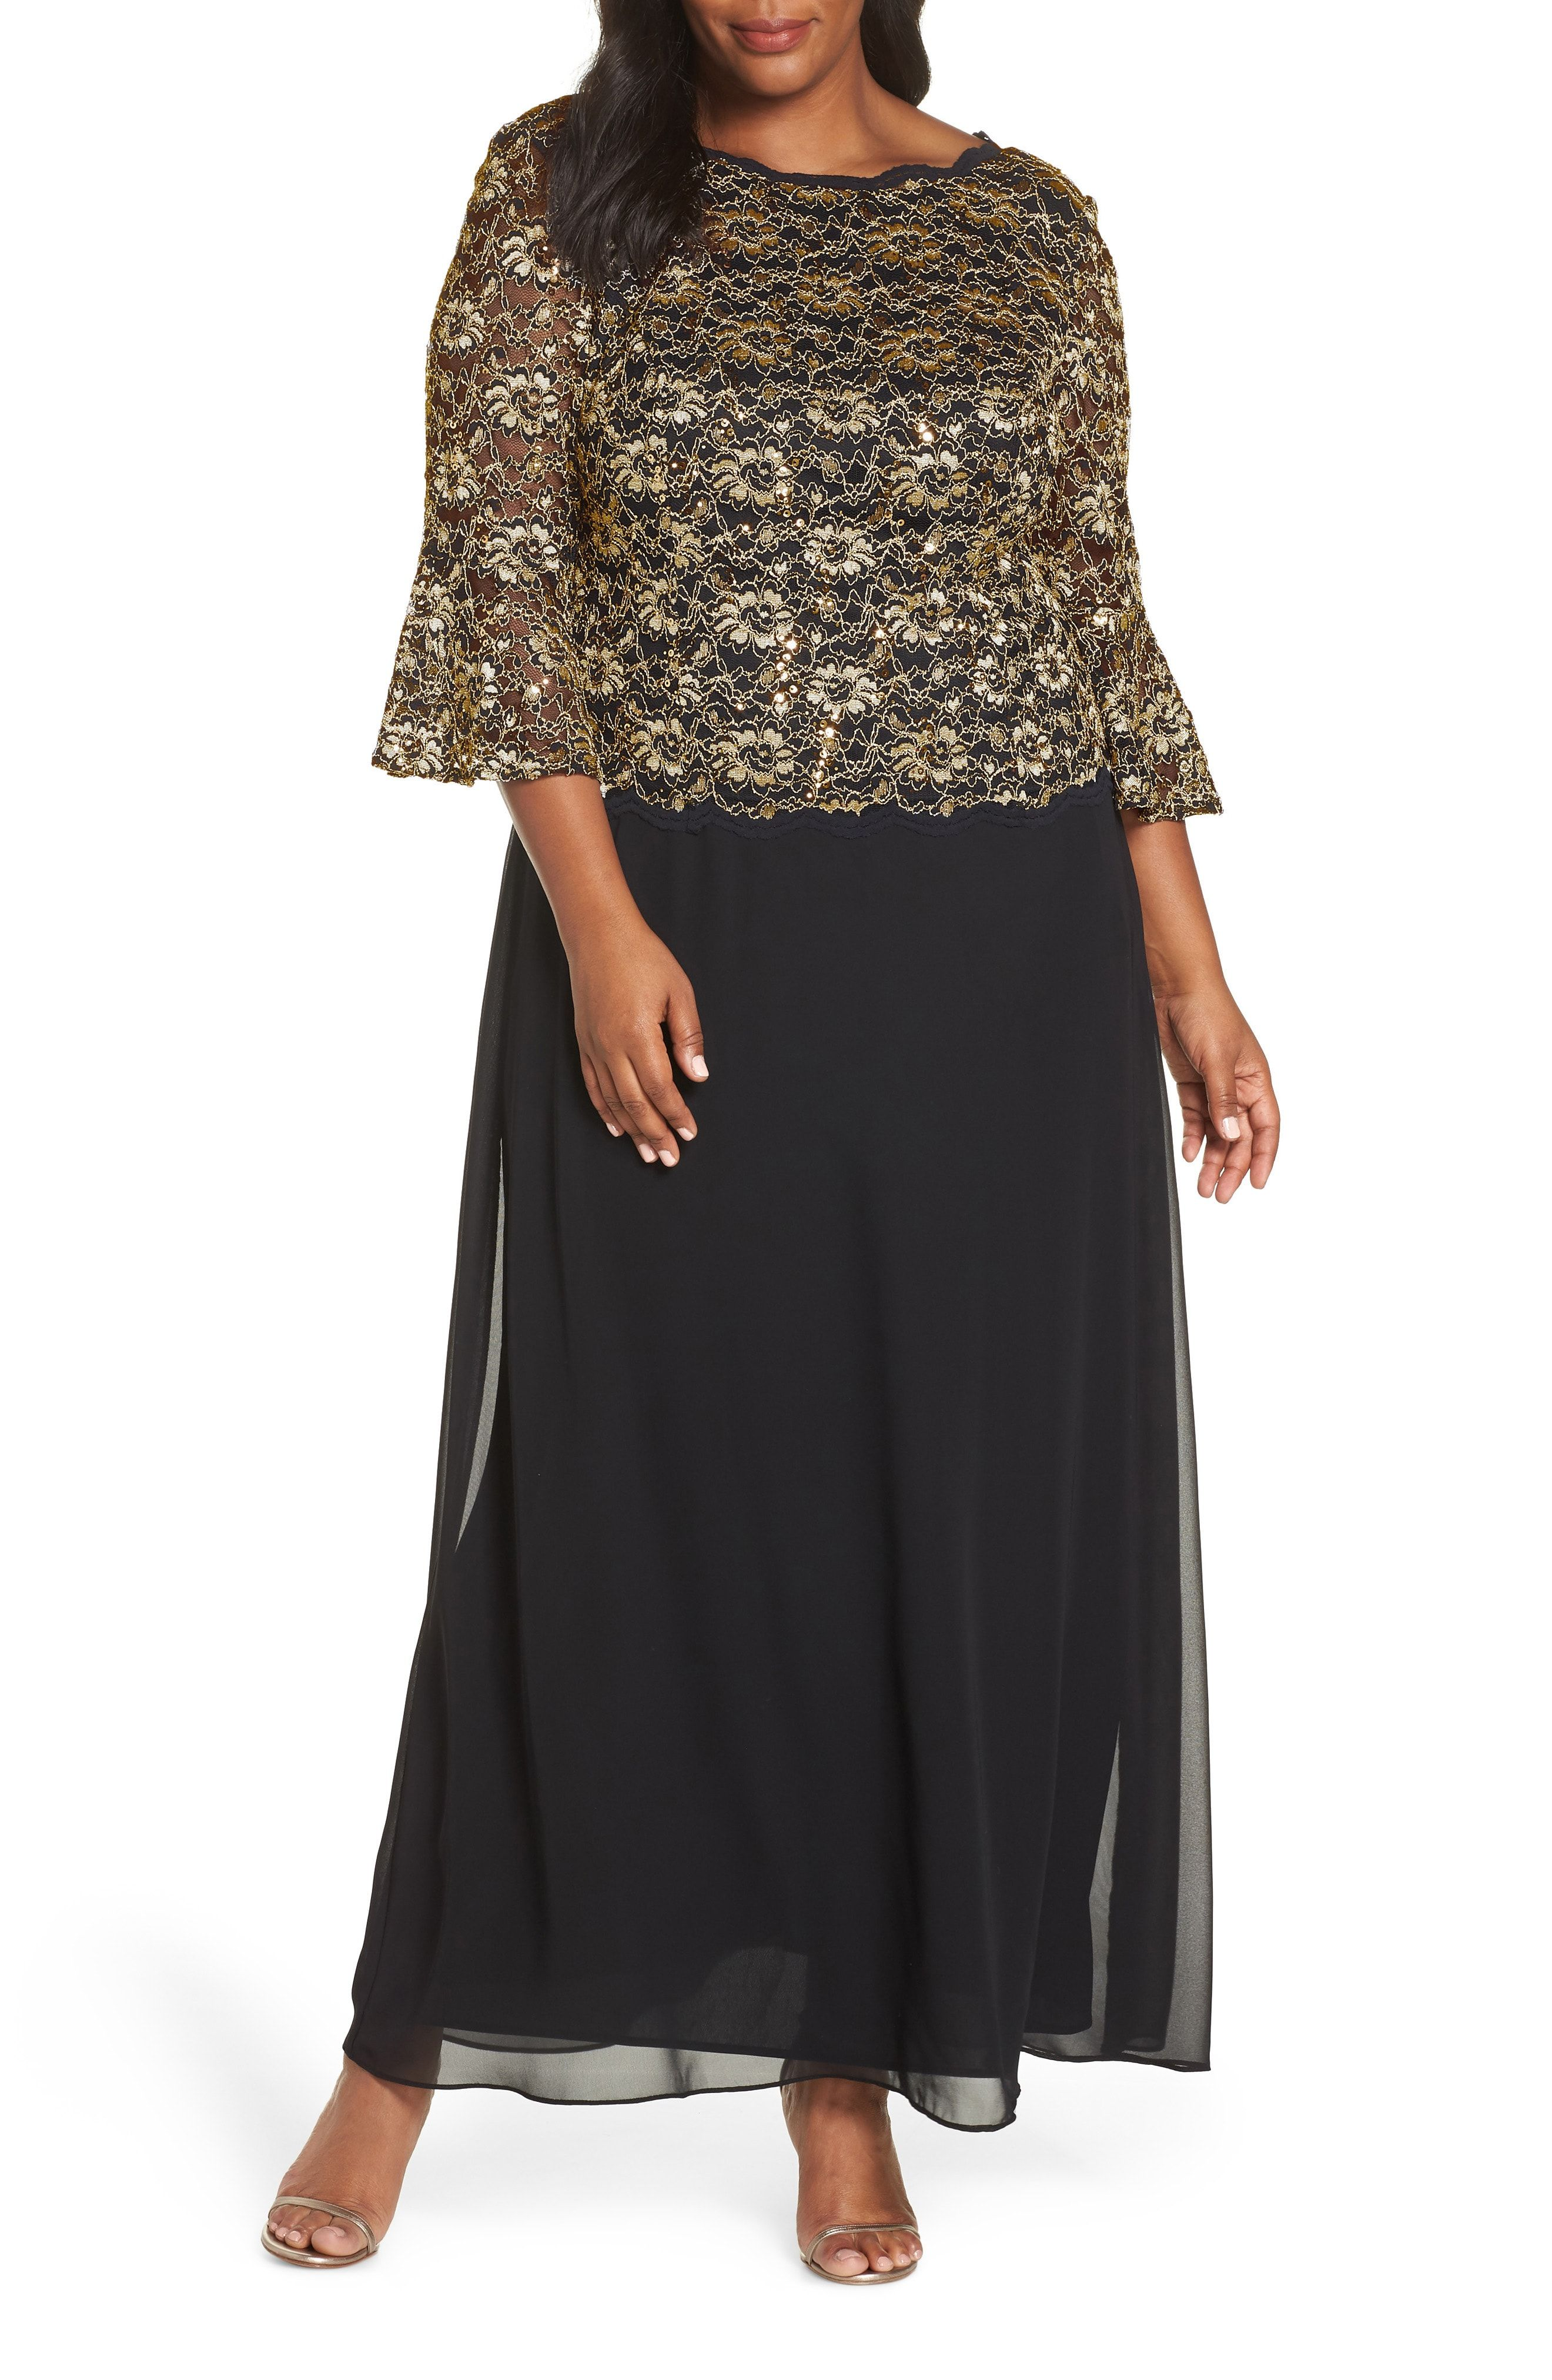 Black And Gold Plus Size Mother Of The Bride Dress With Sleeves Affiliate Weddings Mothe Mother Of The Bride Gown Mother Of The Bride Suits Gown Plus Size [ 4048 x 2640 Pixel ]